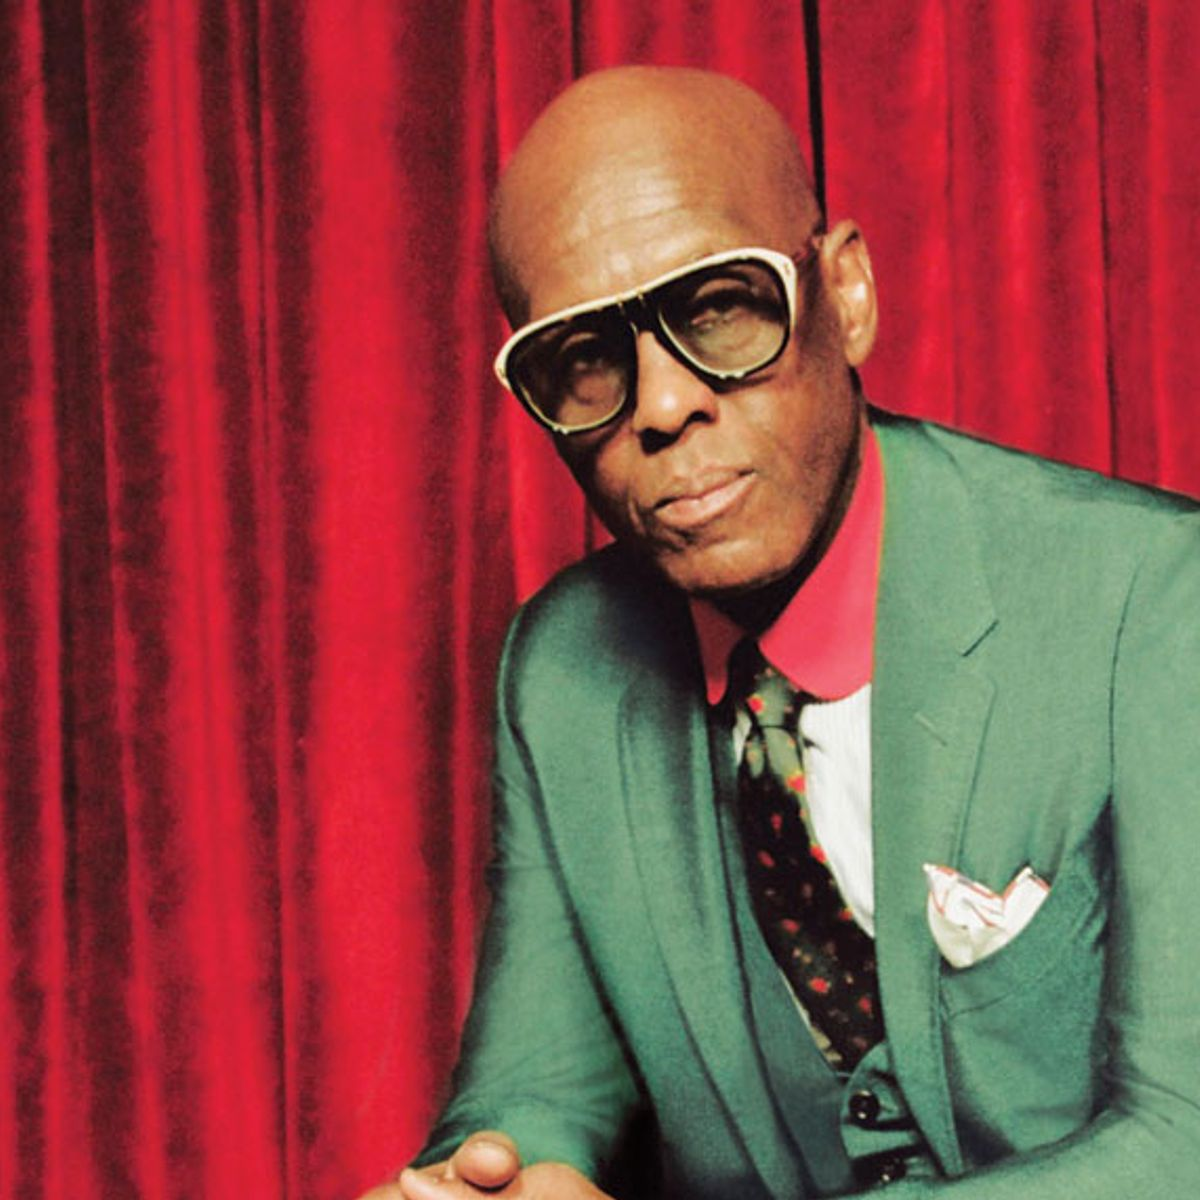 What does being fly mean to Dapper Dan? Liberation